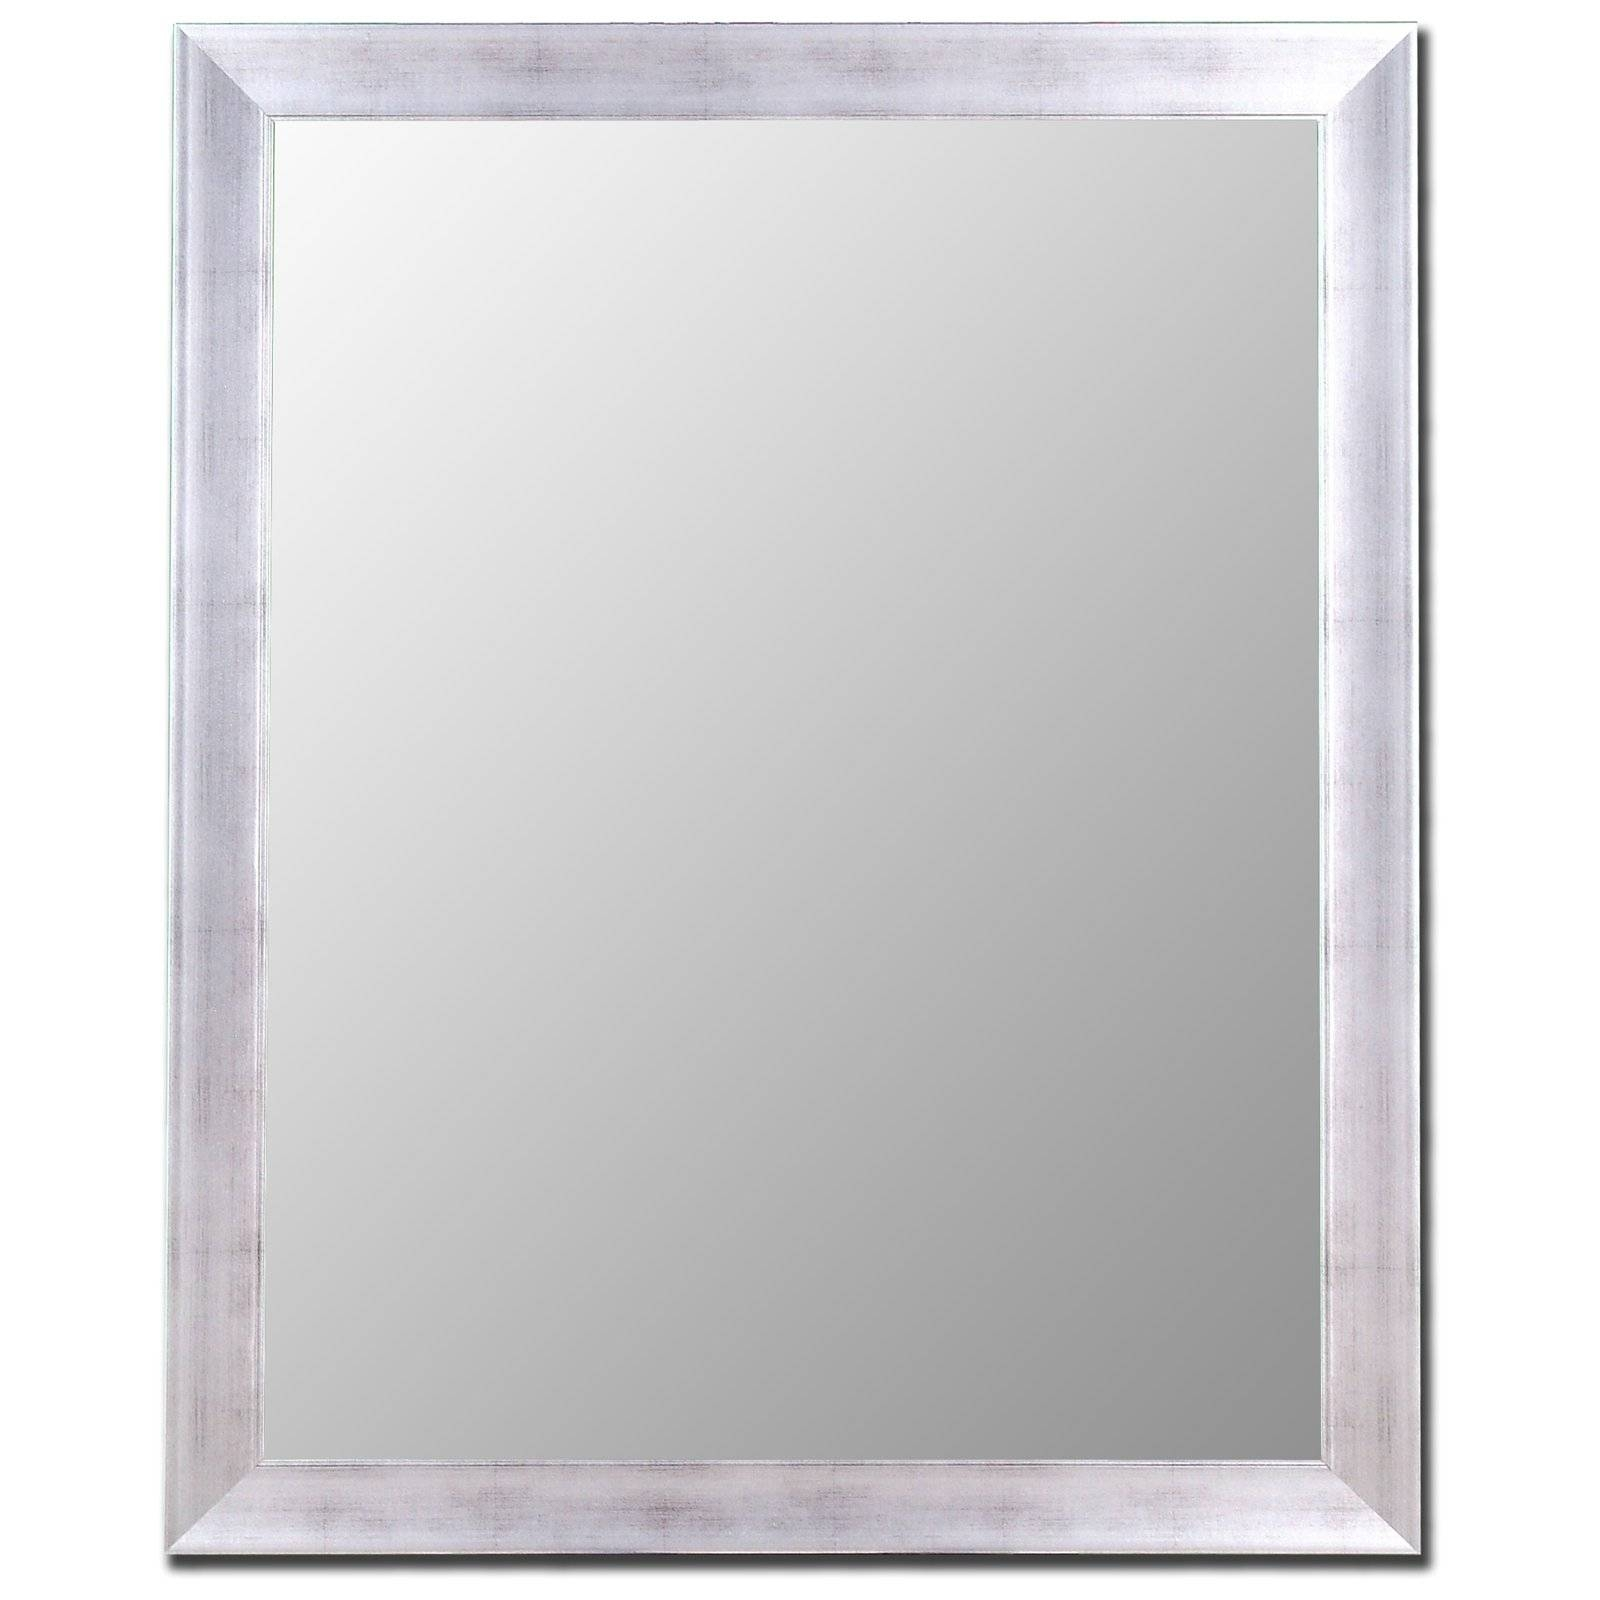 Silver & Stainless Mirror | Hayneedle With Regard To Silver Mirrors (View 18 of 25)